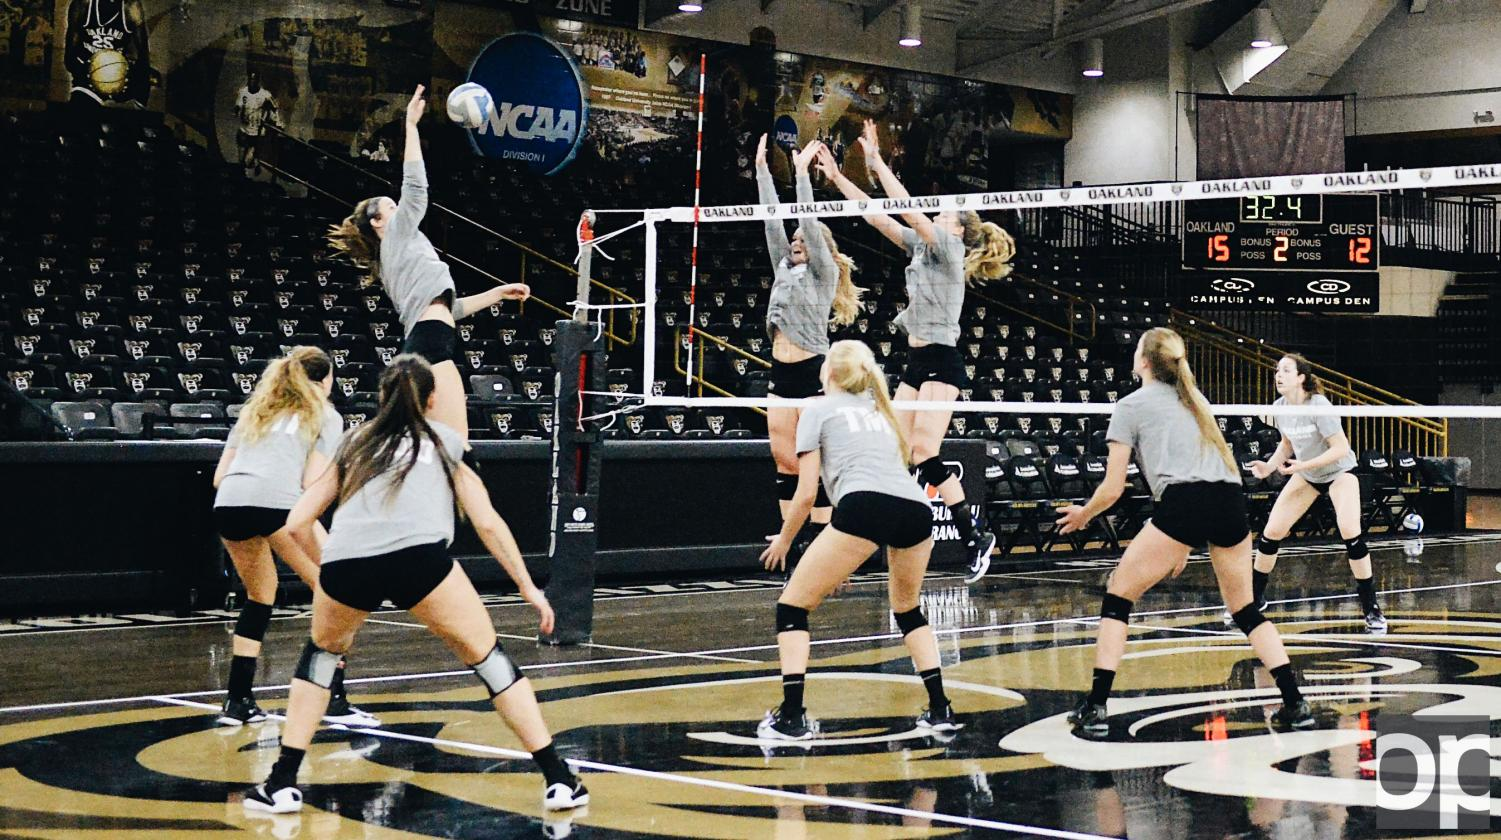 The Womens Volleyball team practices hard in hopes of starting another win streak.